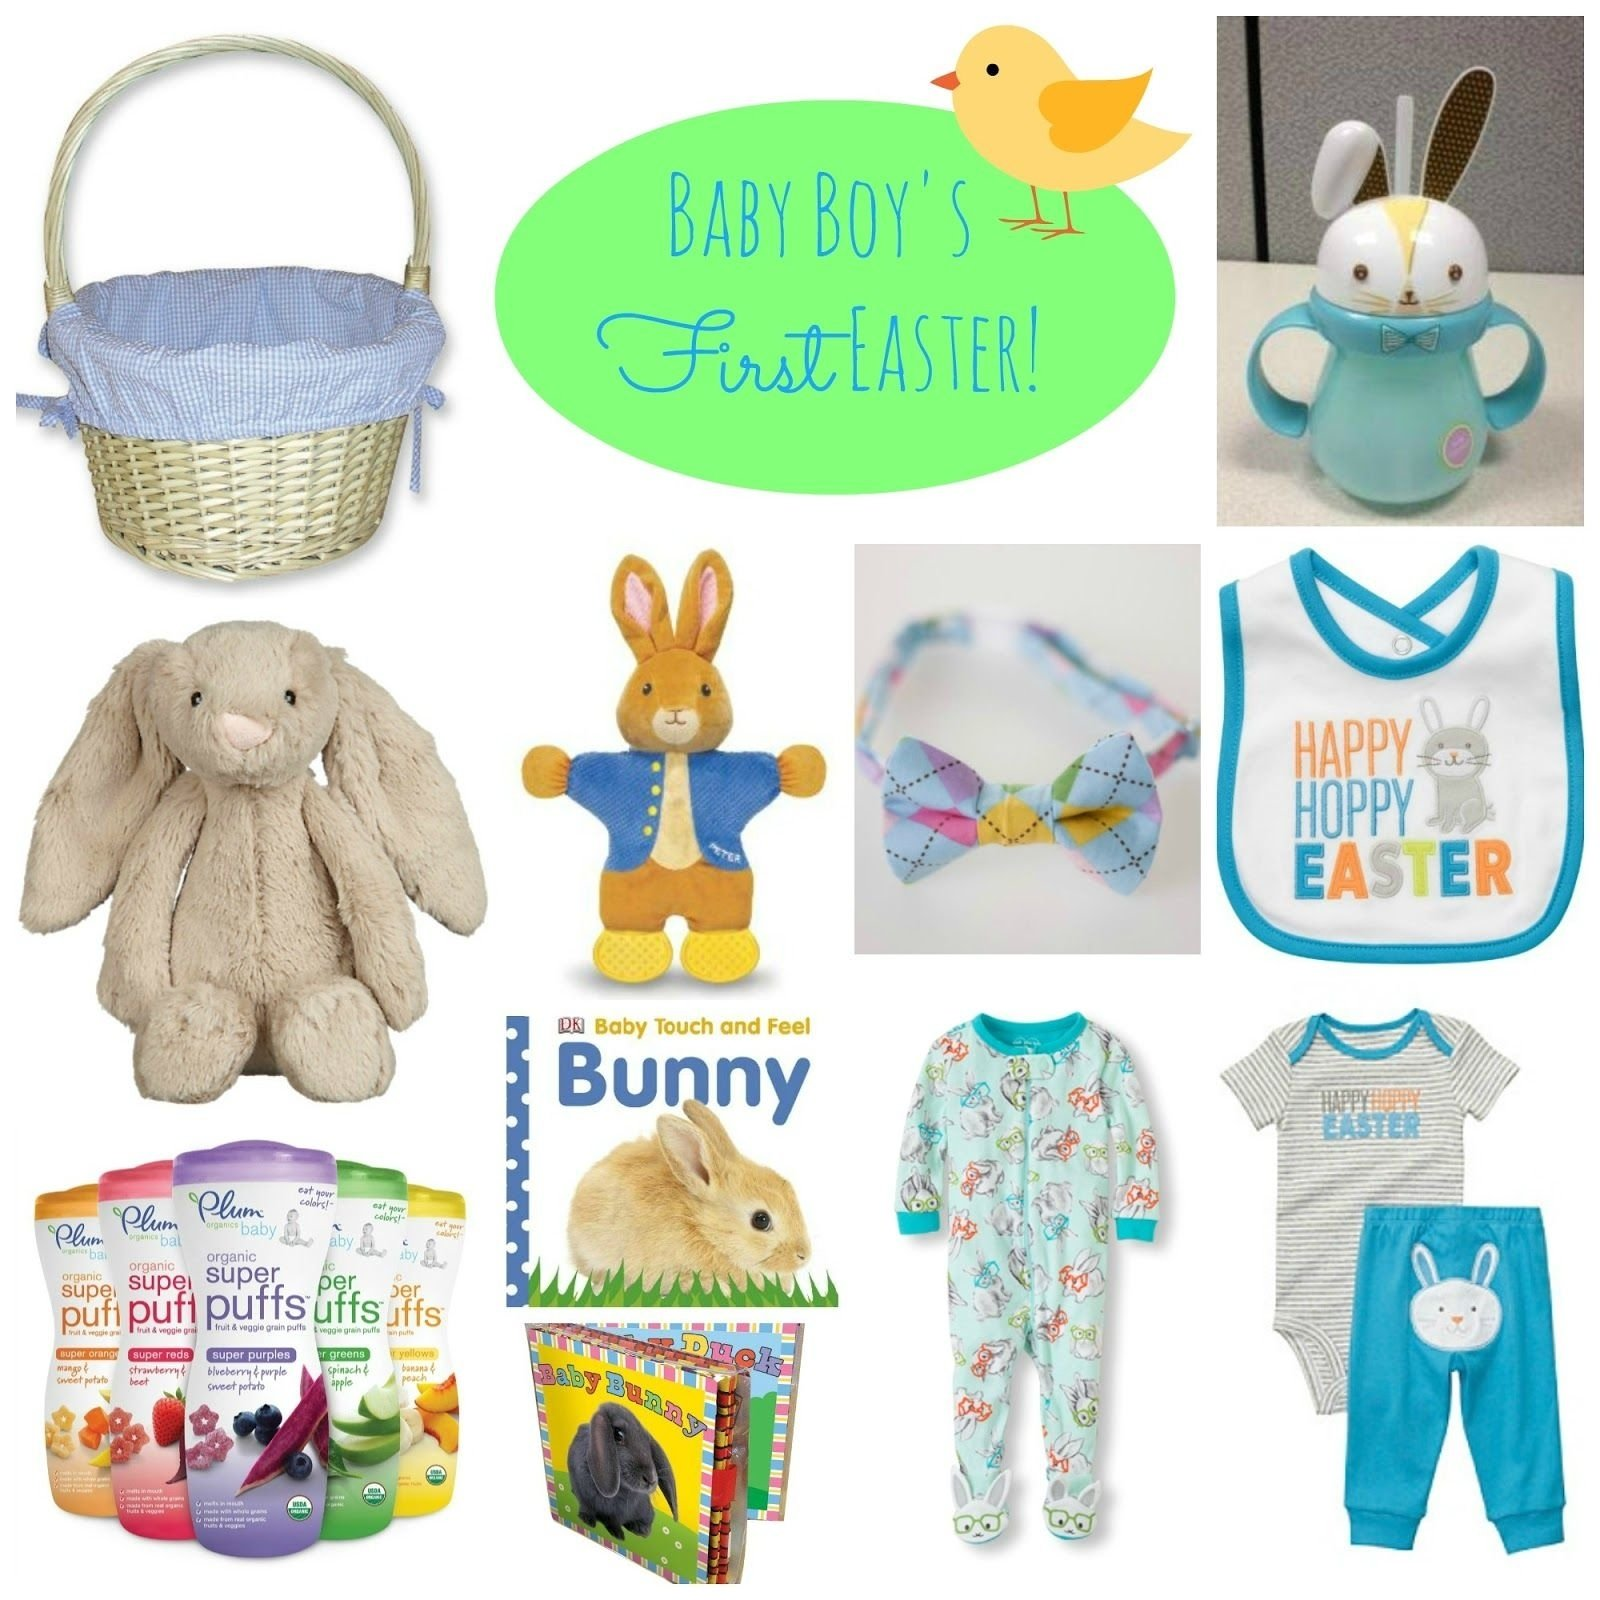 baby boy's first easter basket ideas (with links for purchasing